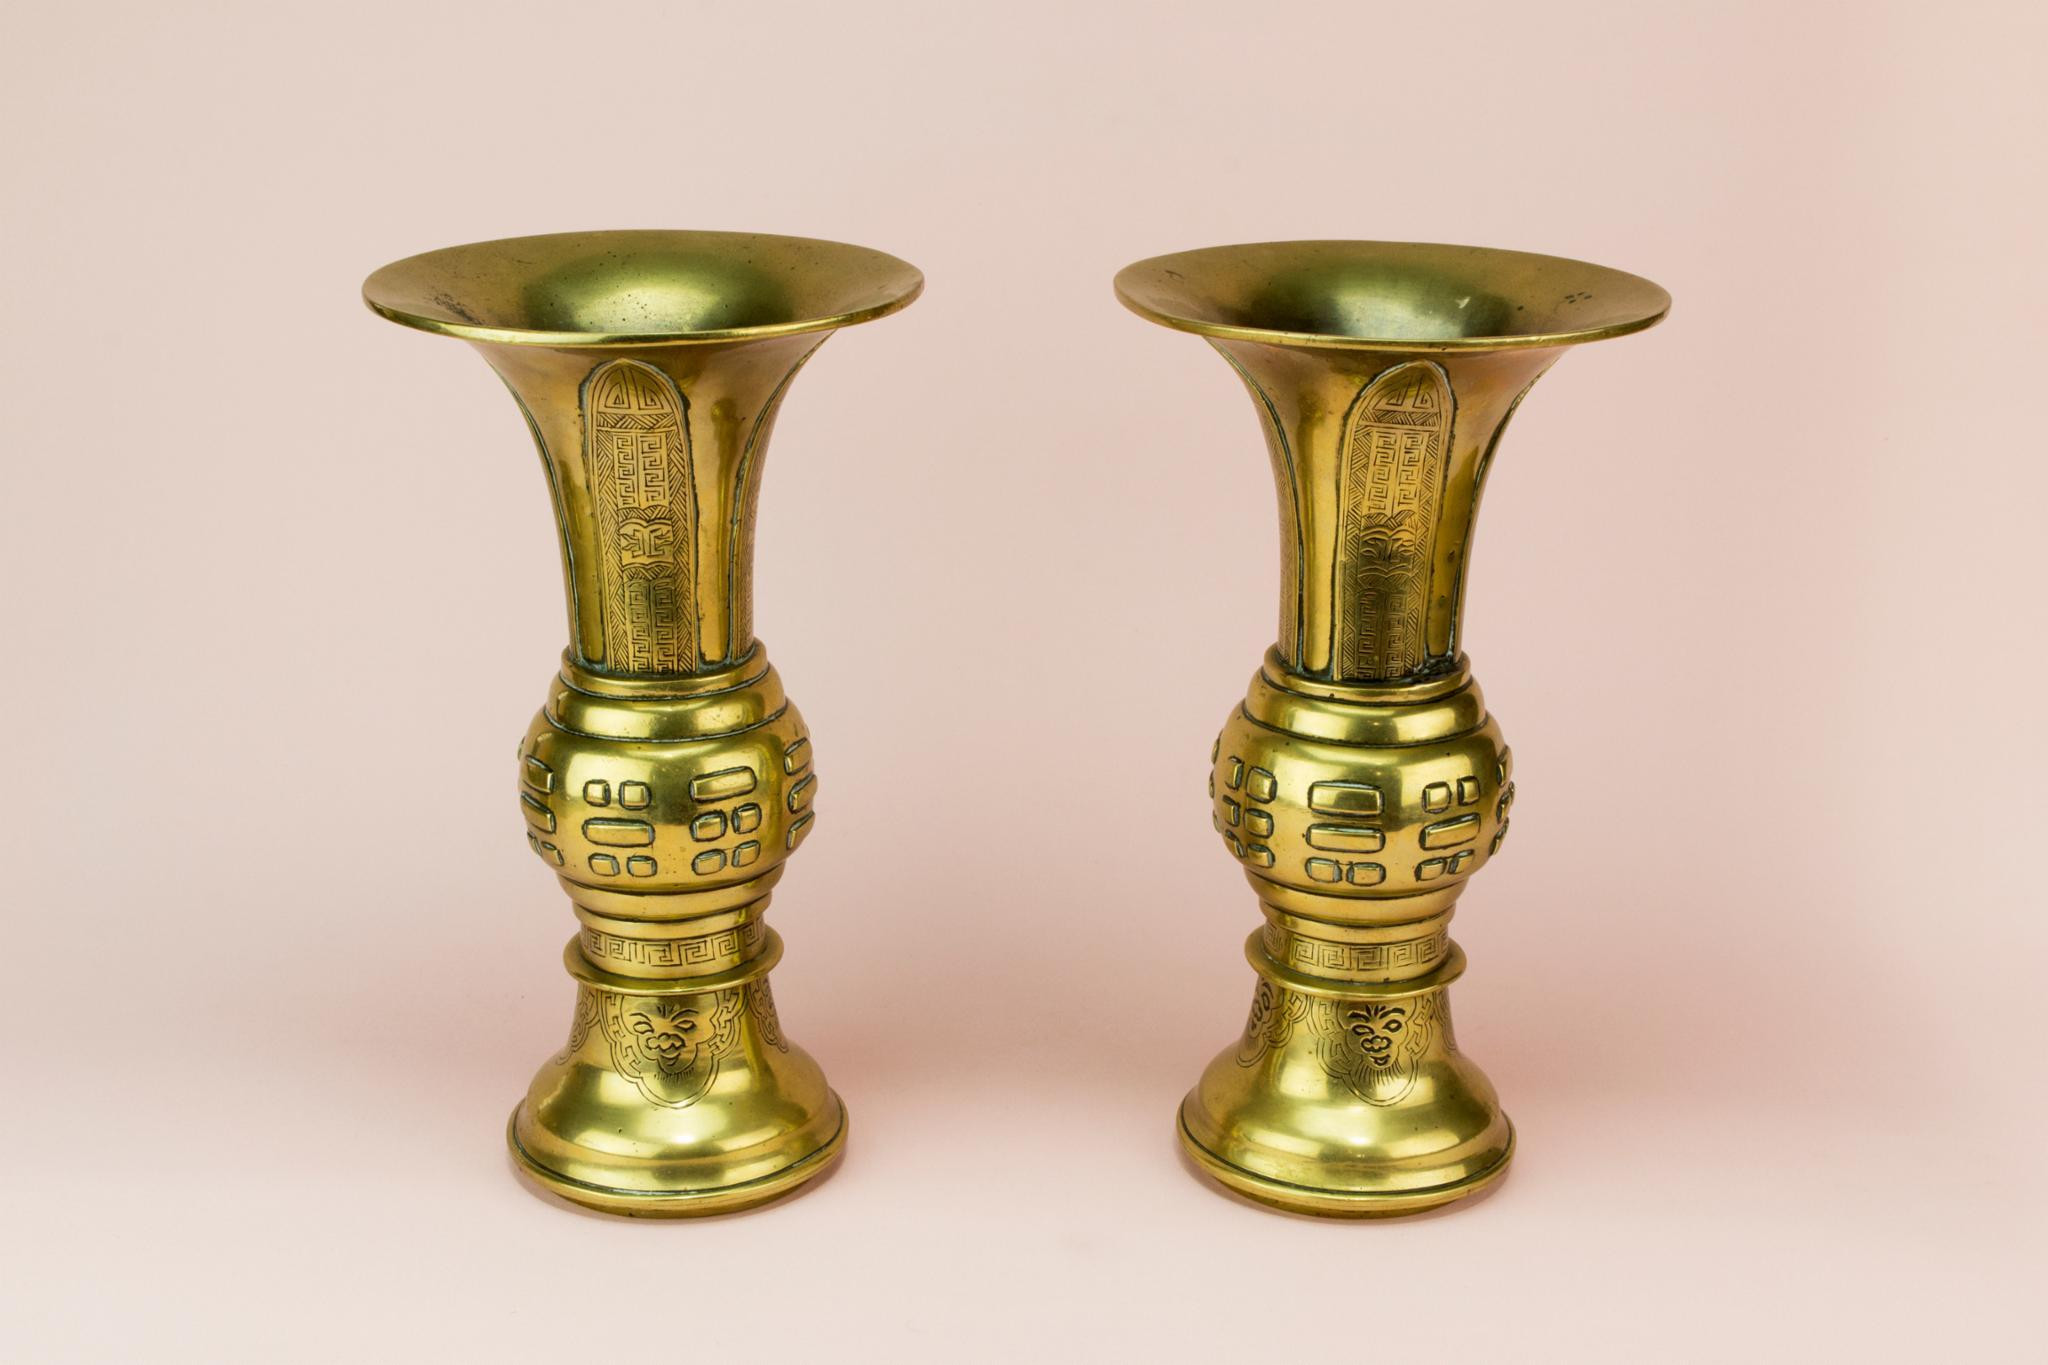 amethyst glass vase of 2 gu shaped brass vases chinese 19th century late 19th century with 2 gu shaped brass vases chinese 19th century